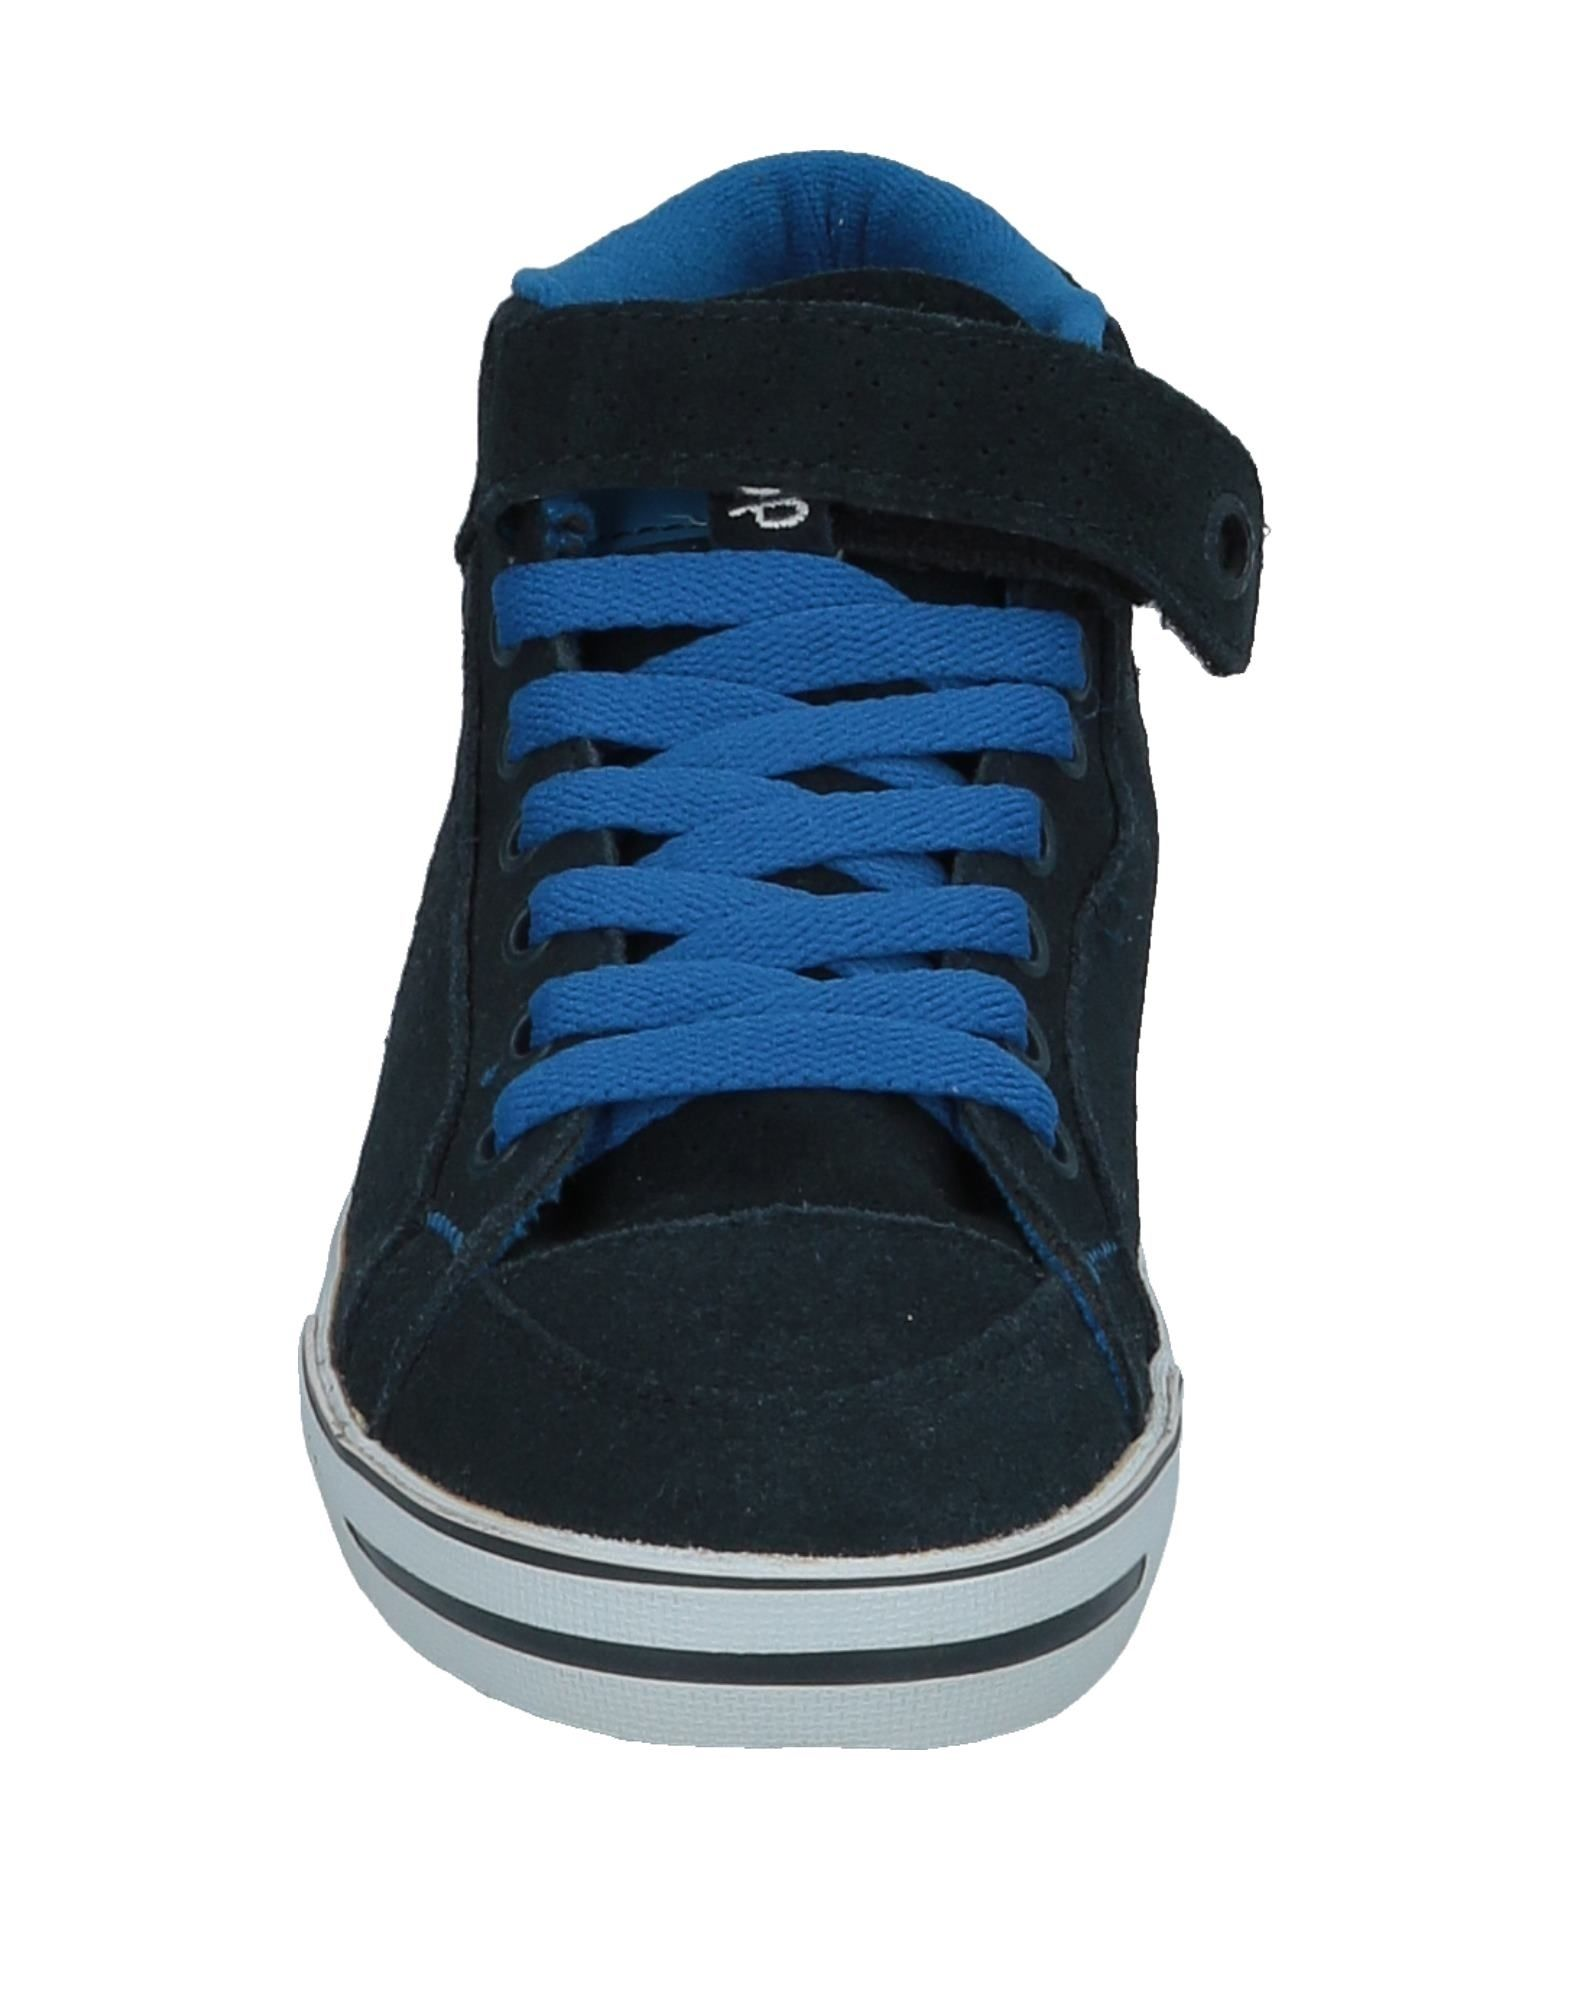 Sneakers Dvs Shoe Company Donna Donna Donna - 11532537TP 383f39